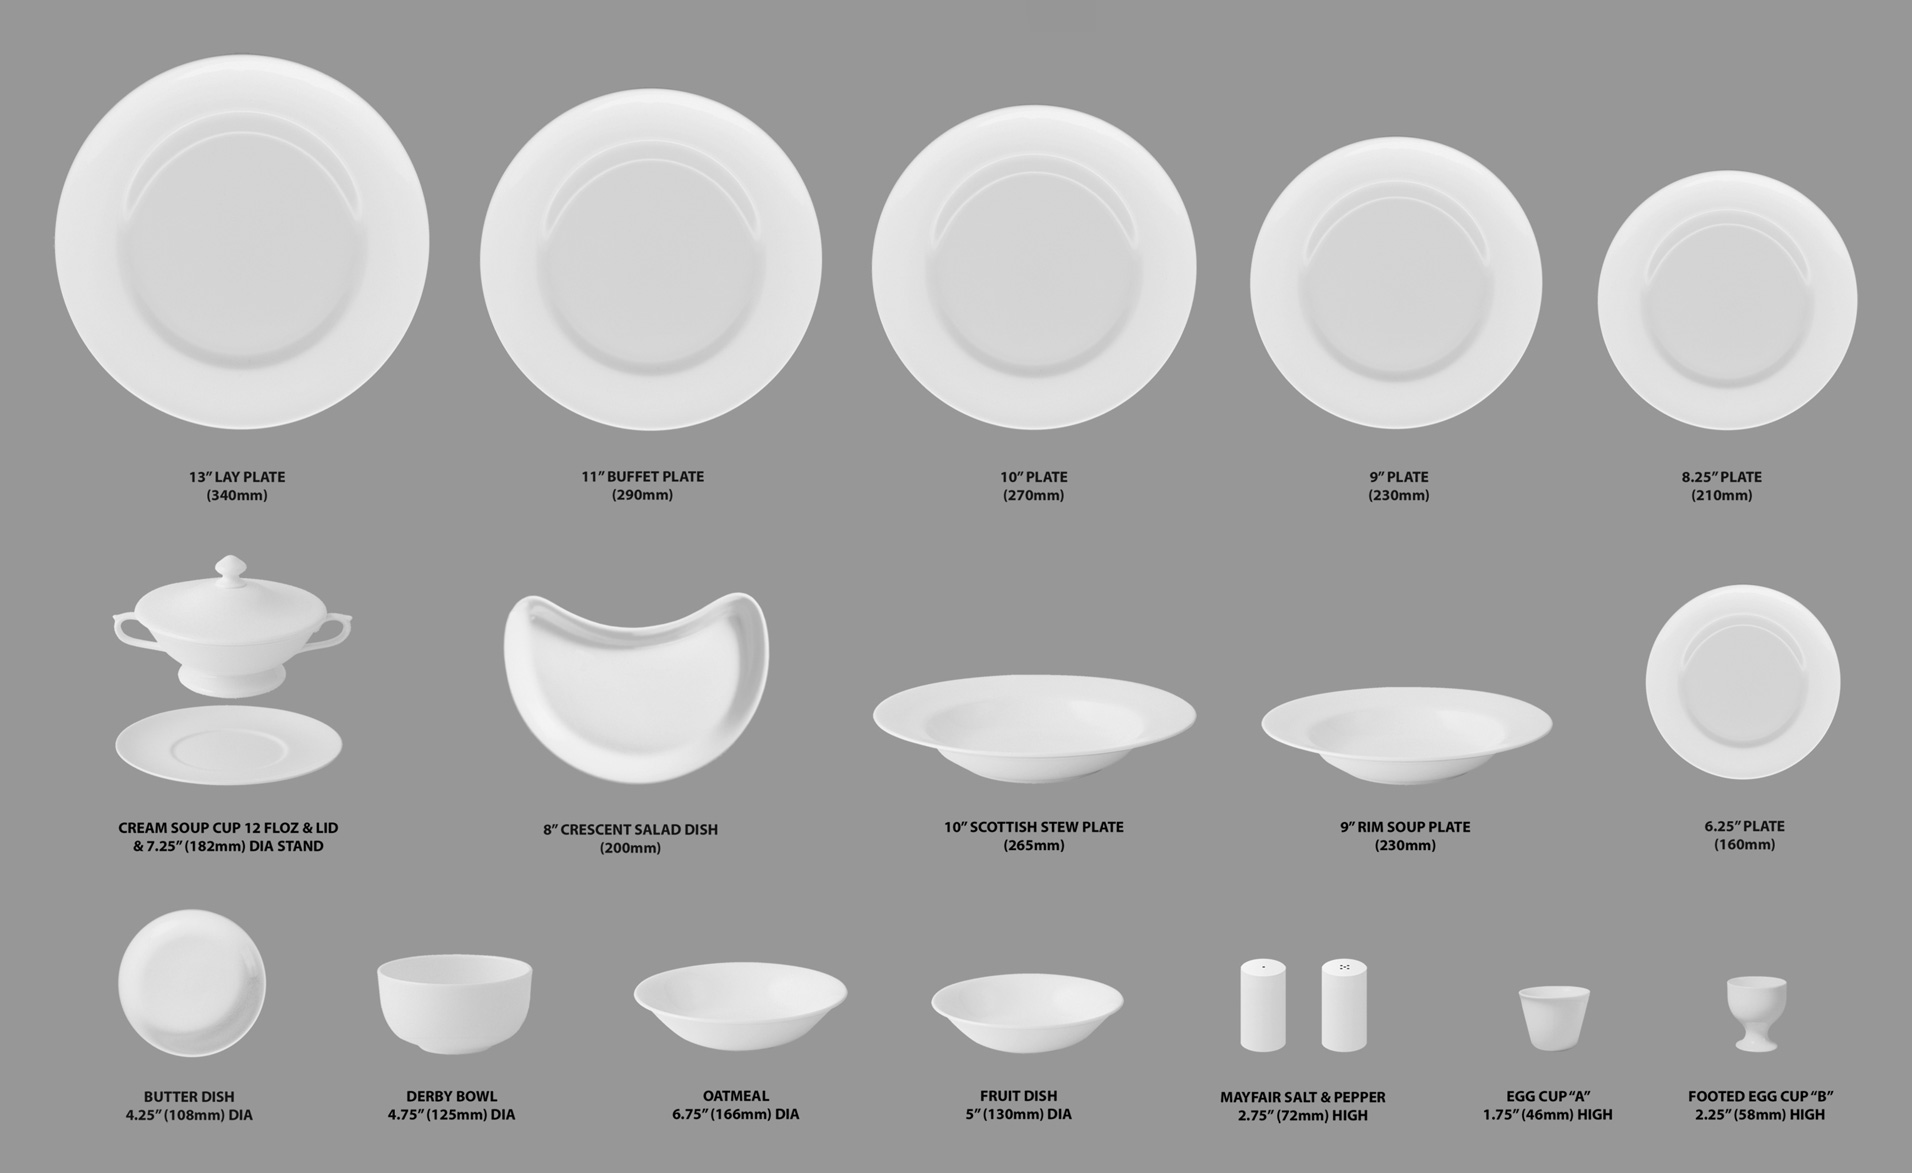 Royal Buckingham Bone China Tableware Shapes Guide